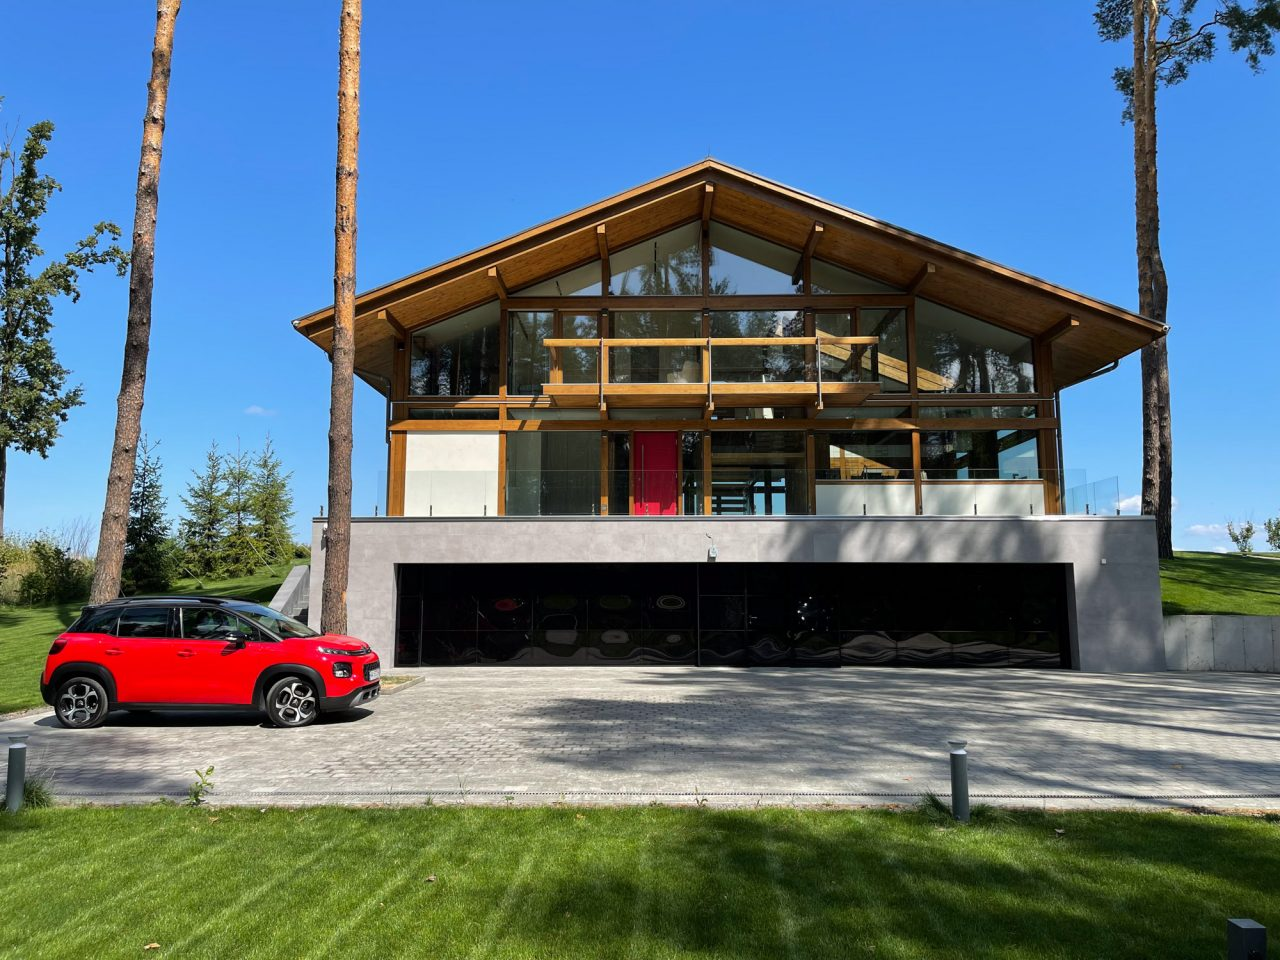 Hlass_house_KAGER - Hurii_22